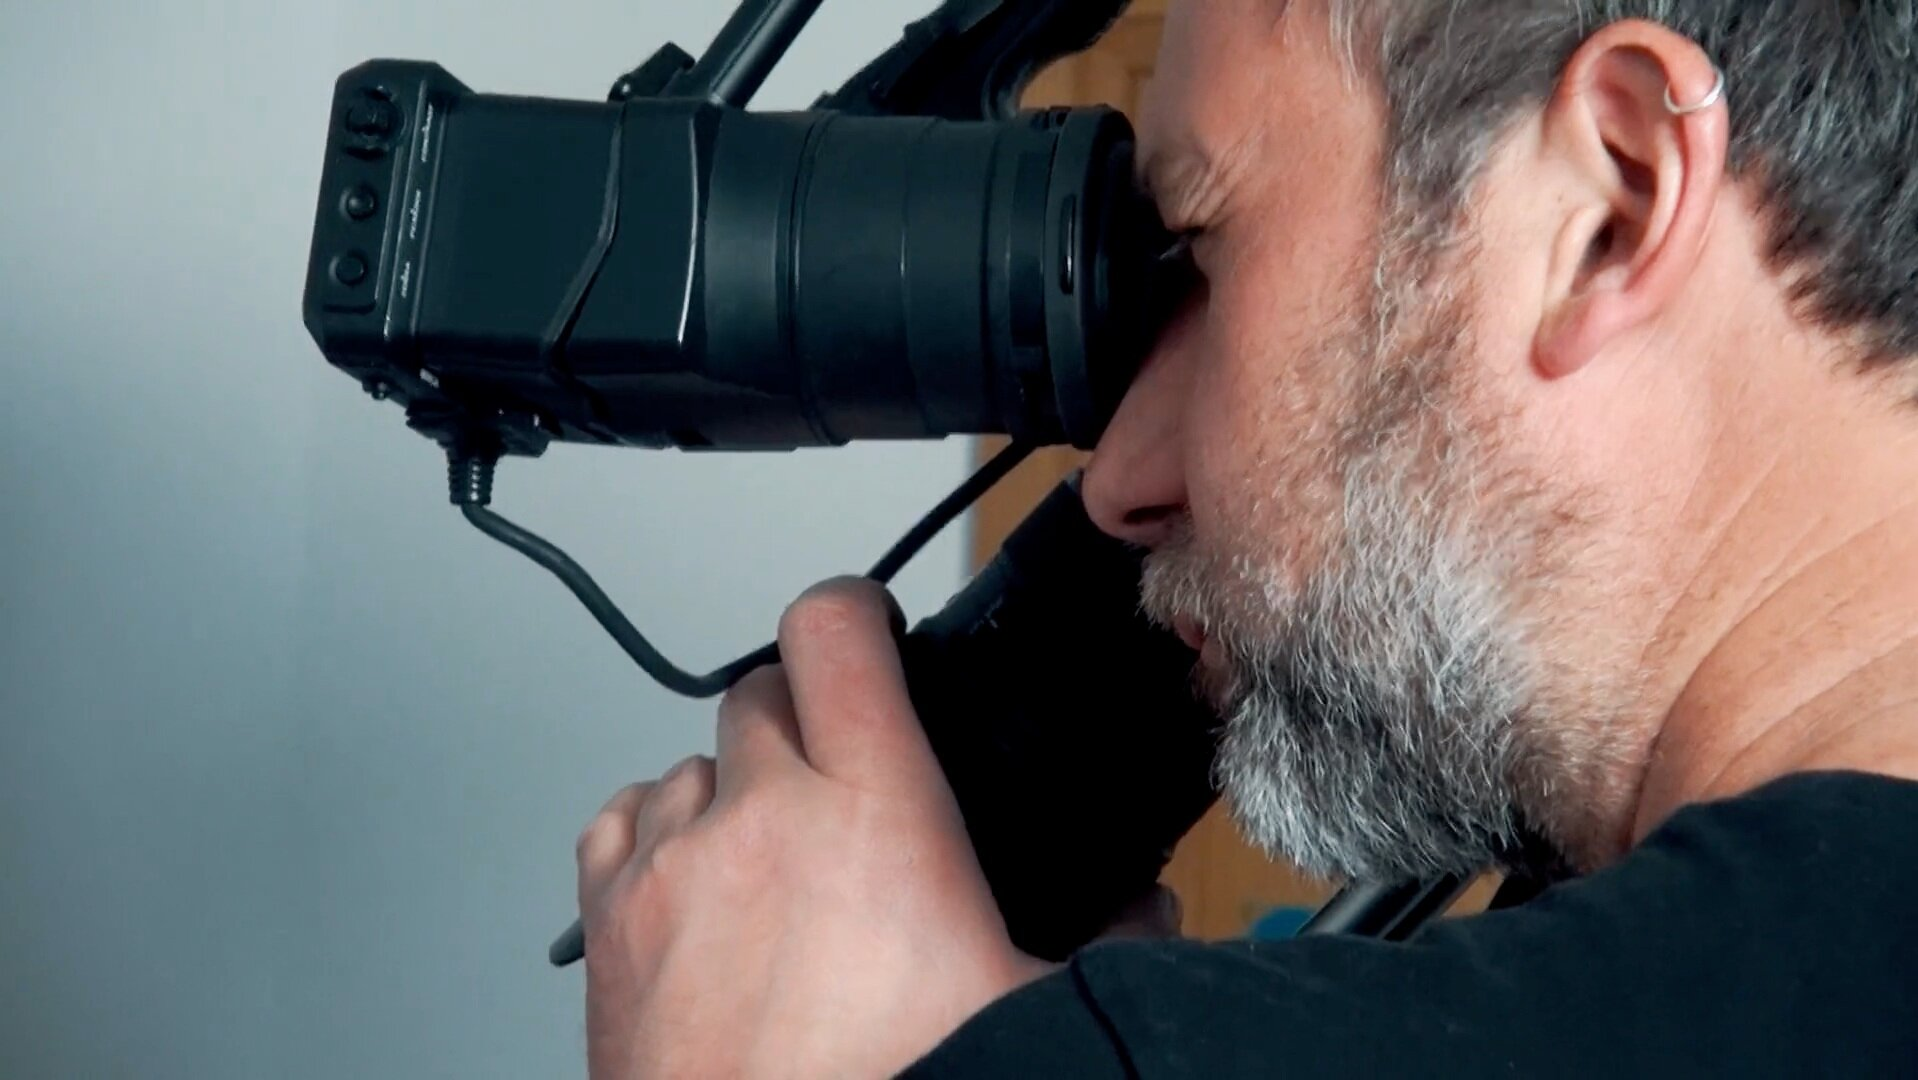 CAMERA OPERATORS - Man and a cam! If all you need is high quality images we'll send you the right person (man or woman) and equipment for the job. Starting from 200 EUR per shoot